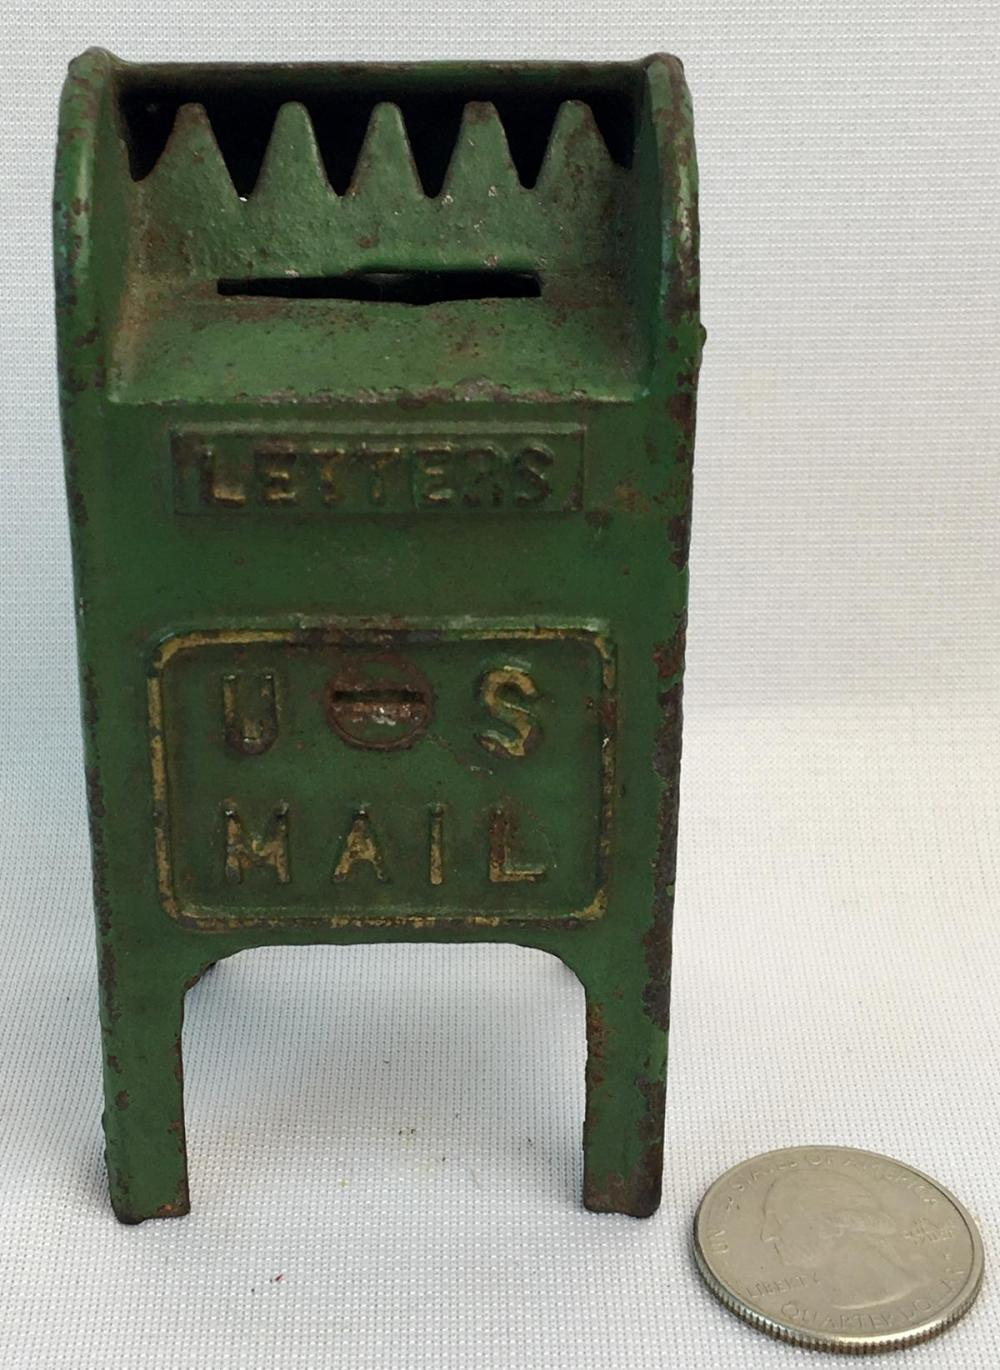 Sold Price Antique C 1920 Cast Iron Green Painted Us Letters Mail Box Coin Still Bank October 1 0120 6 00 Pm Edt